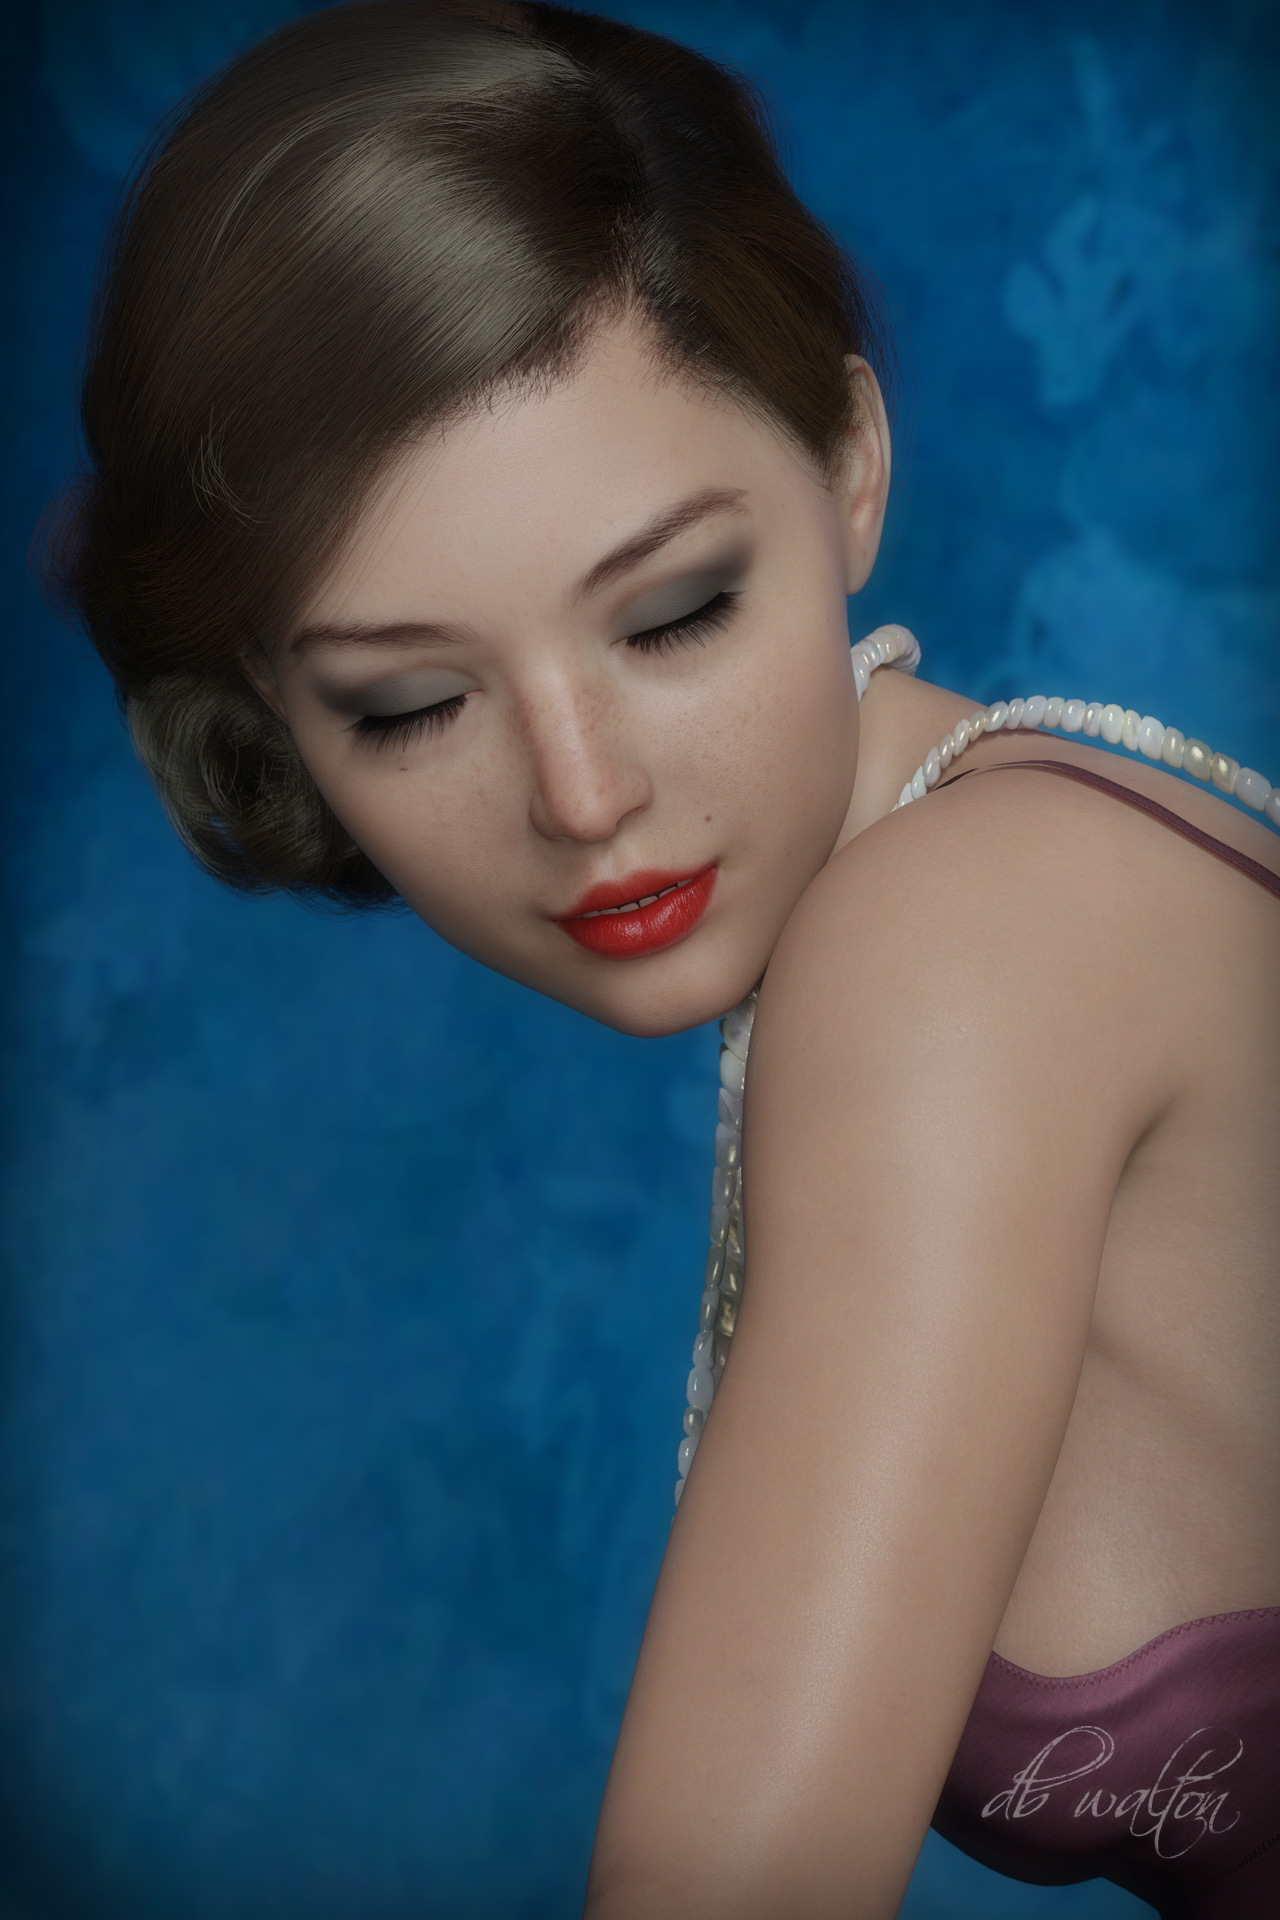 Flapper Girl 2 - in color by dbwalton